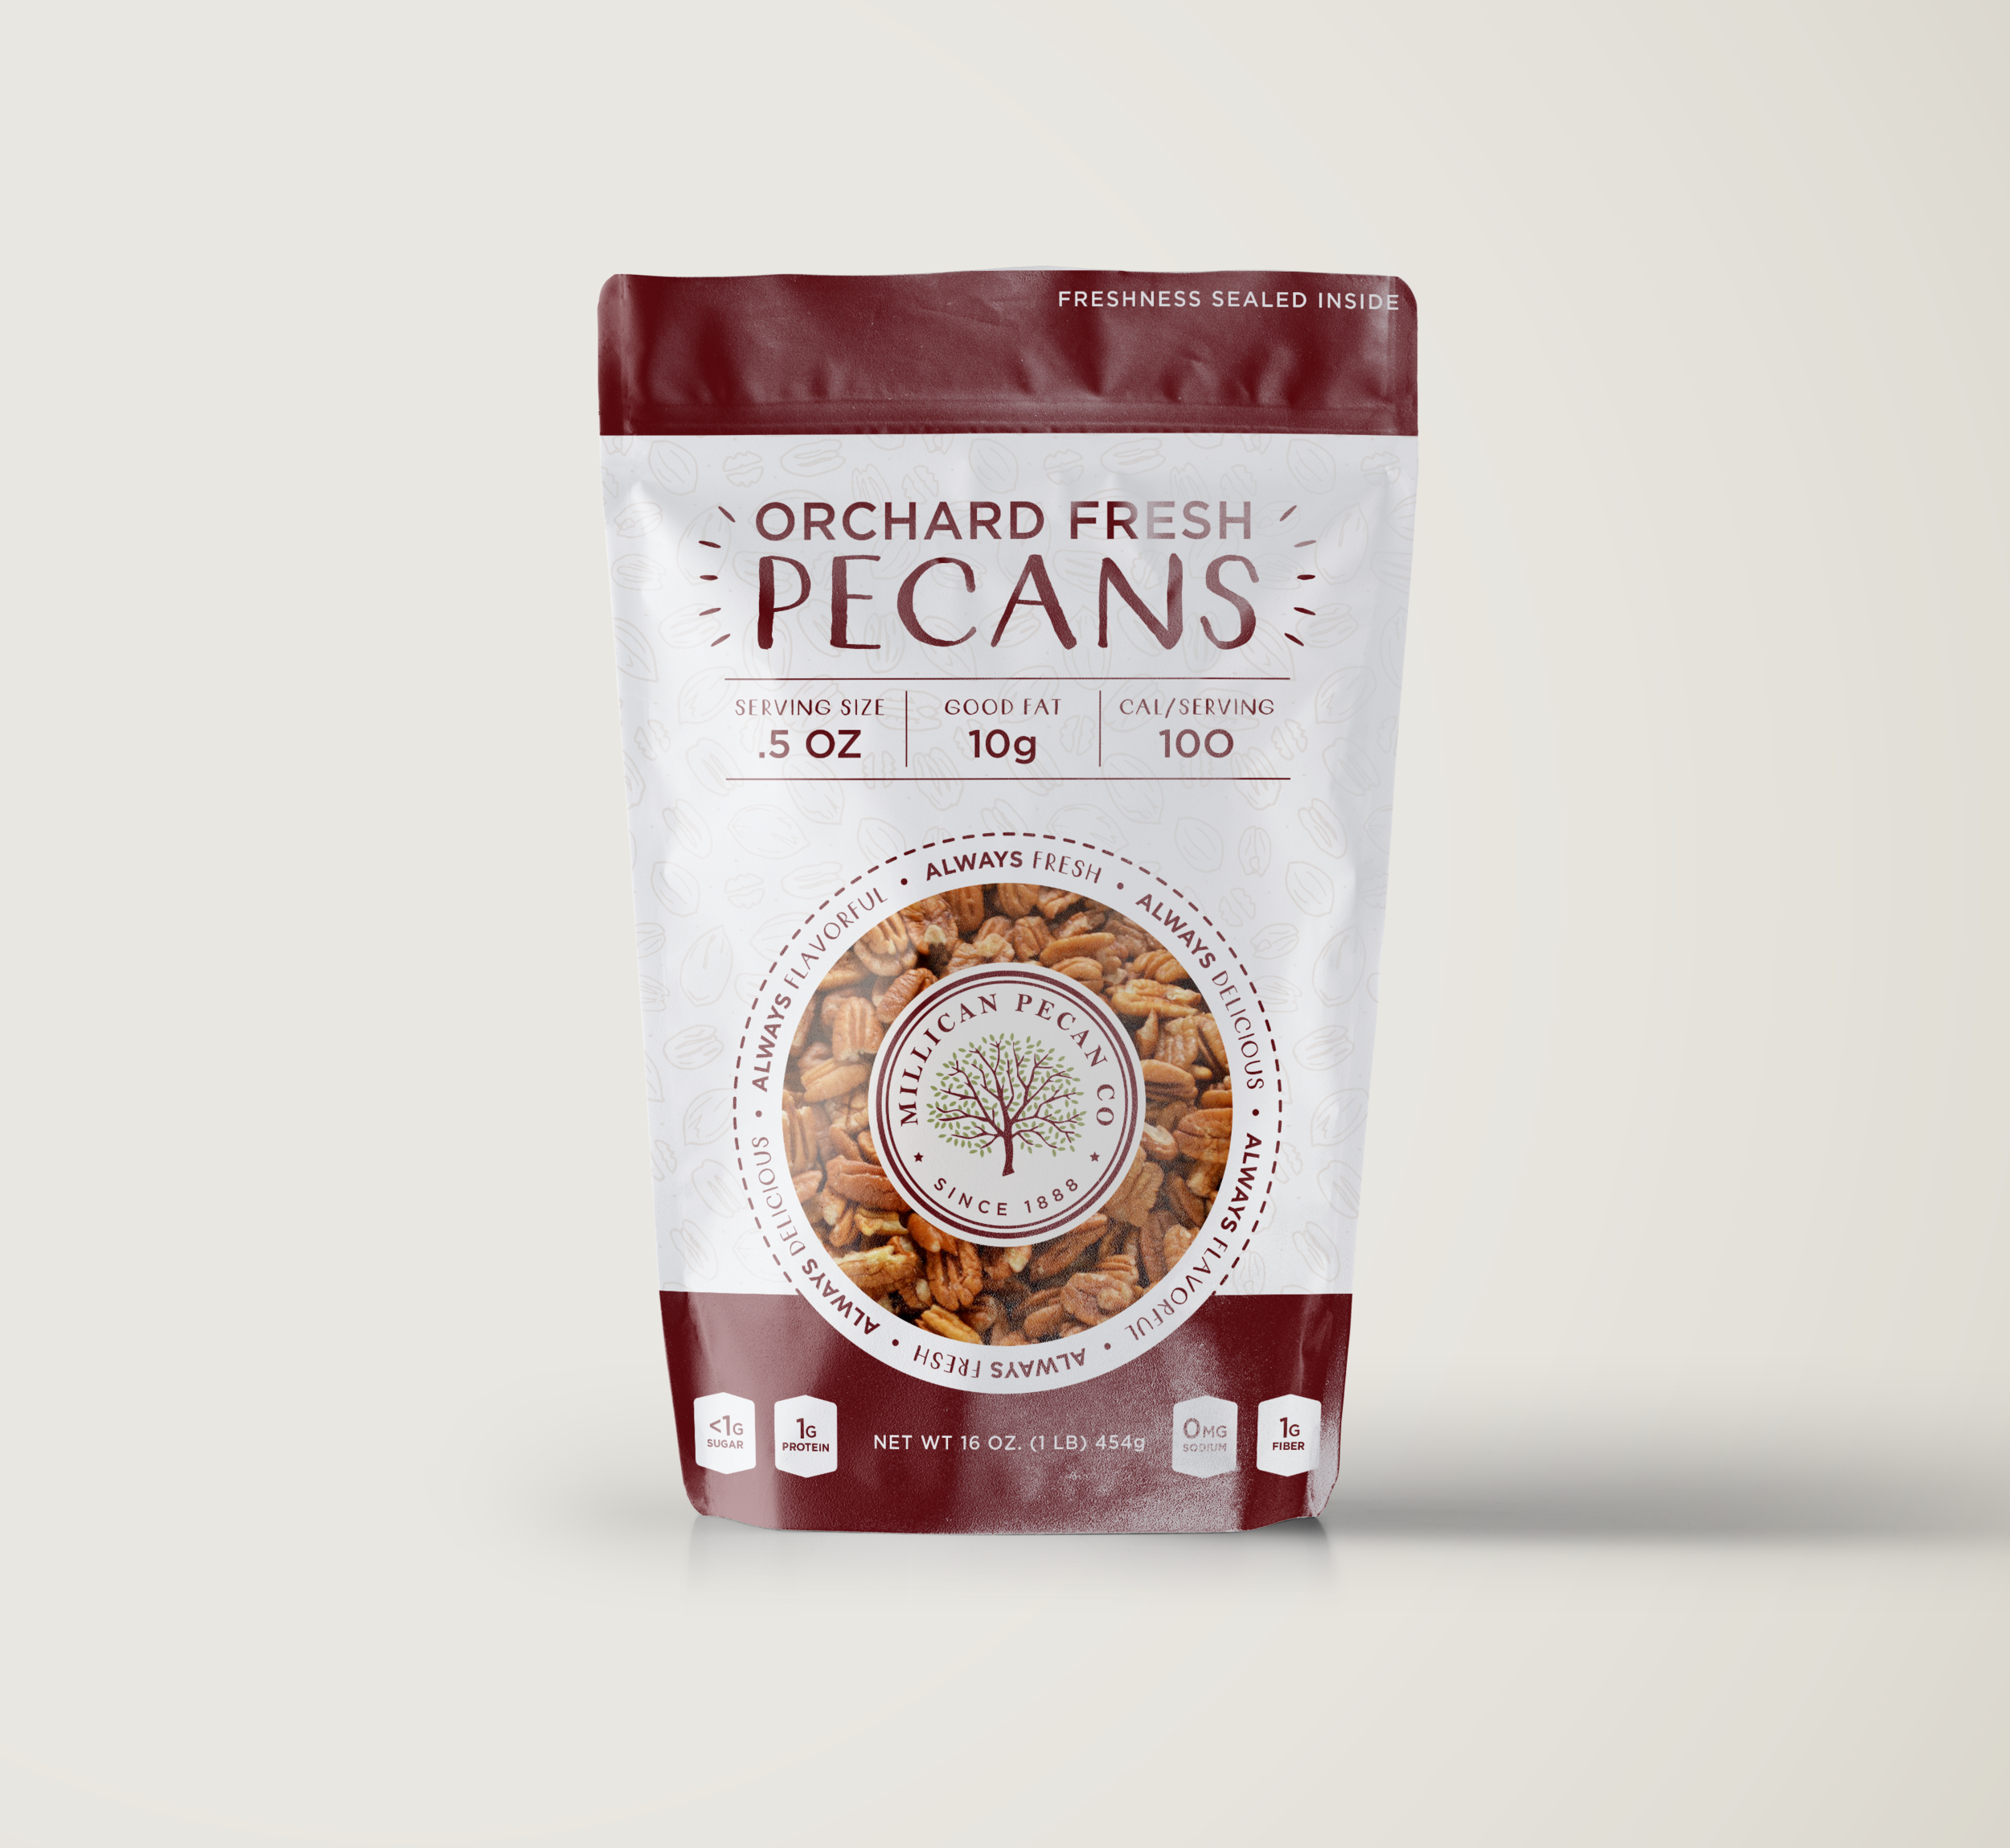 Millican Pecan Co. | Packaging & Re-branding